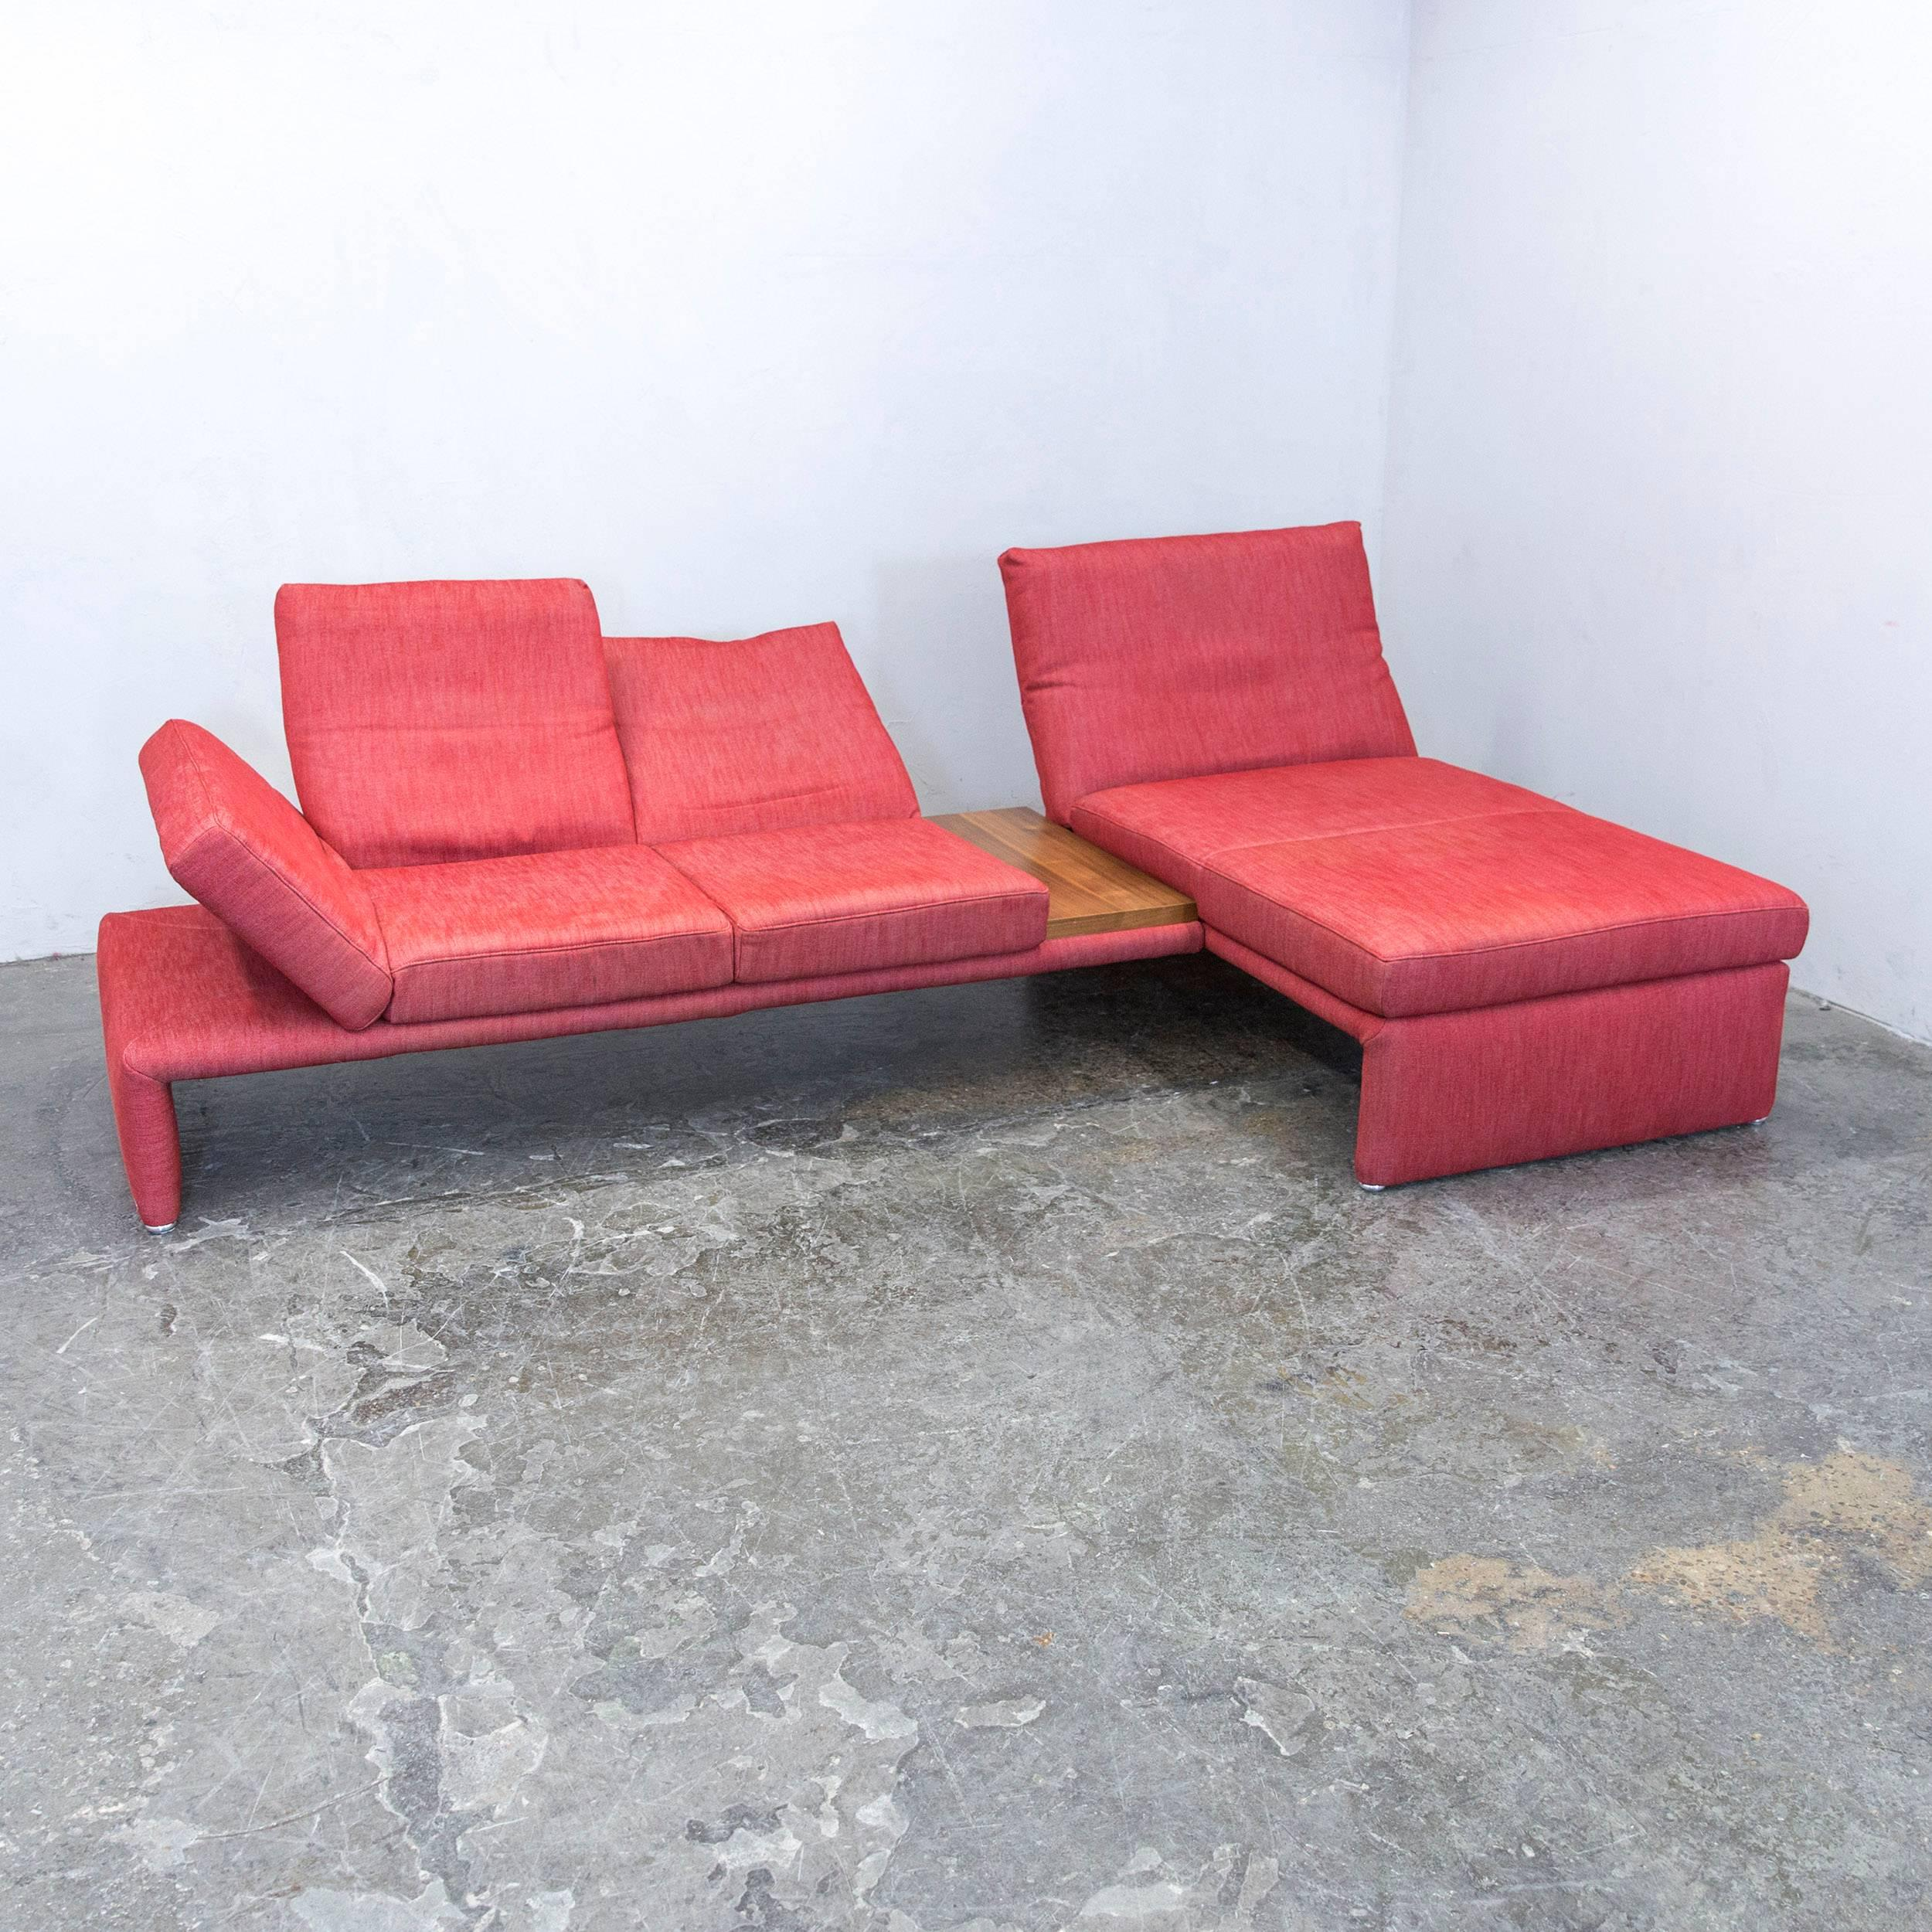 Red Colored Original Koinor Raoul Designer Sofa, In A Minimalistic And  Modern Design, With